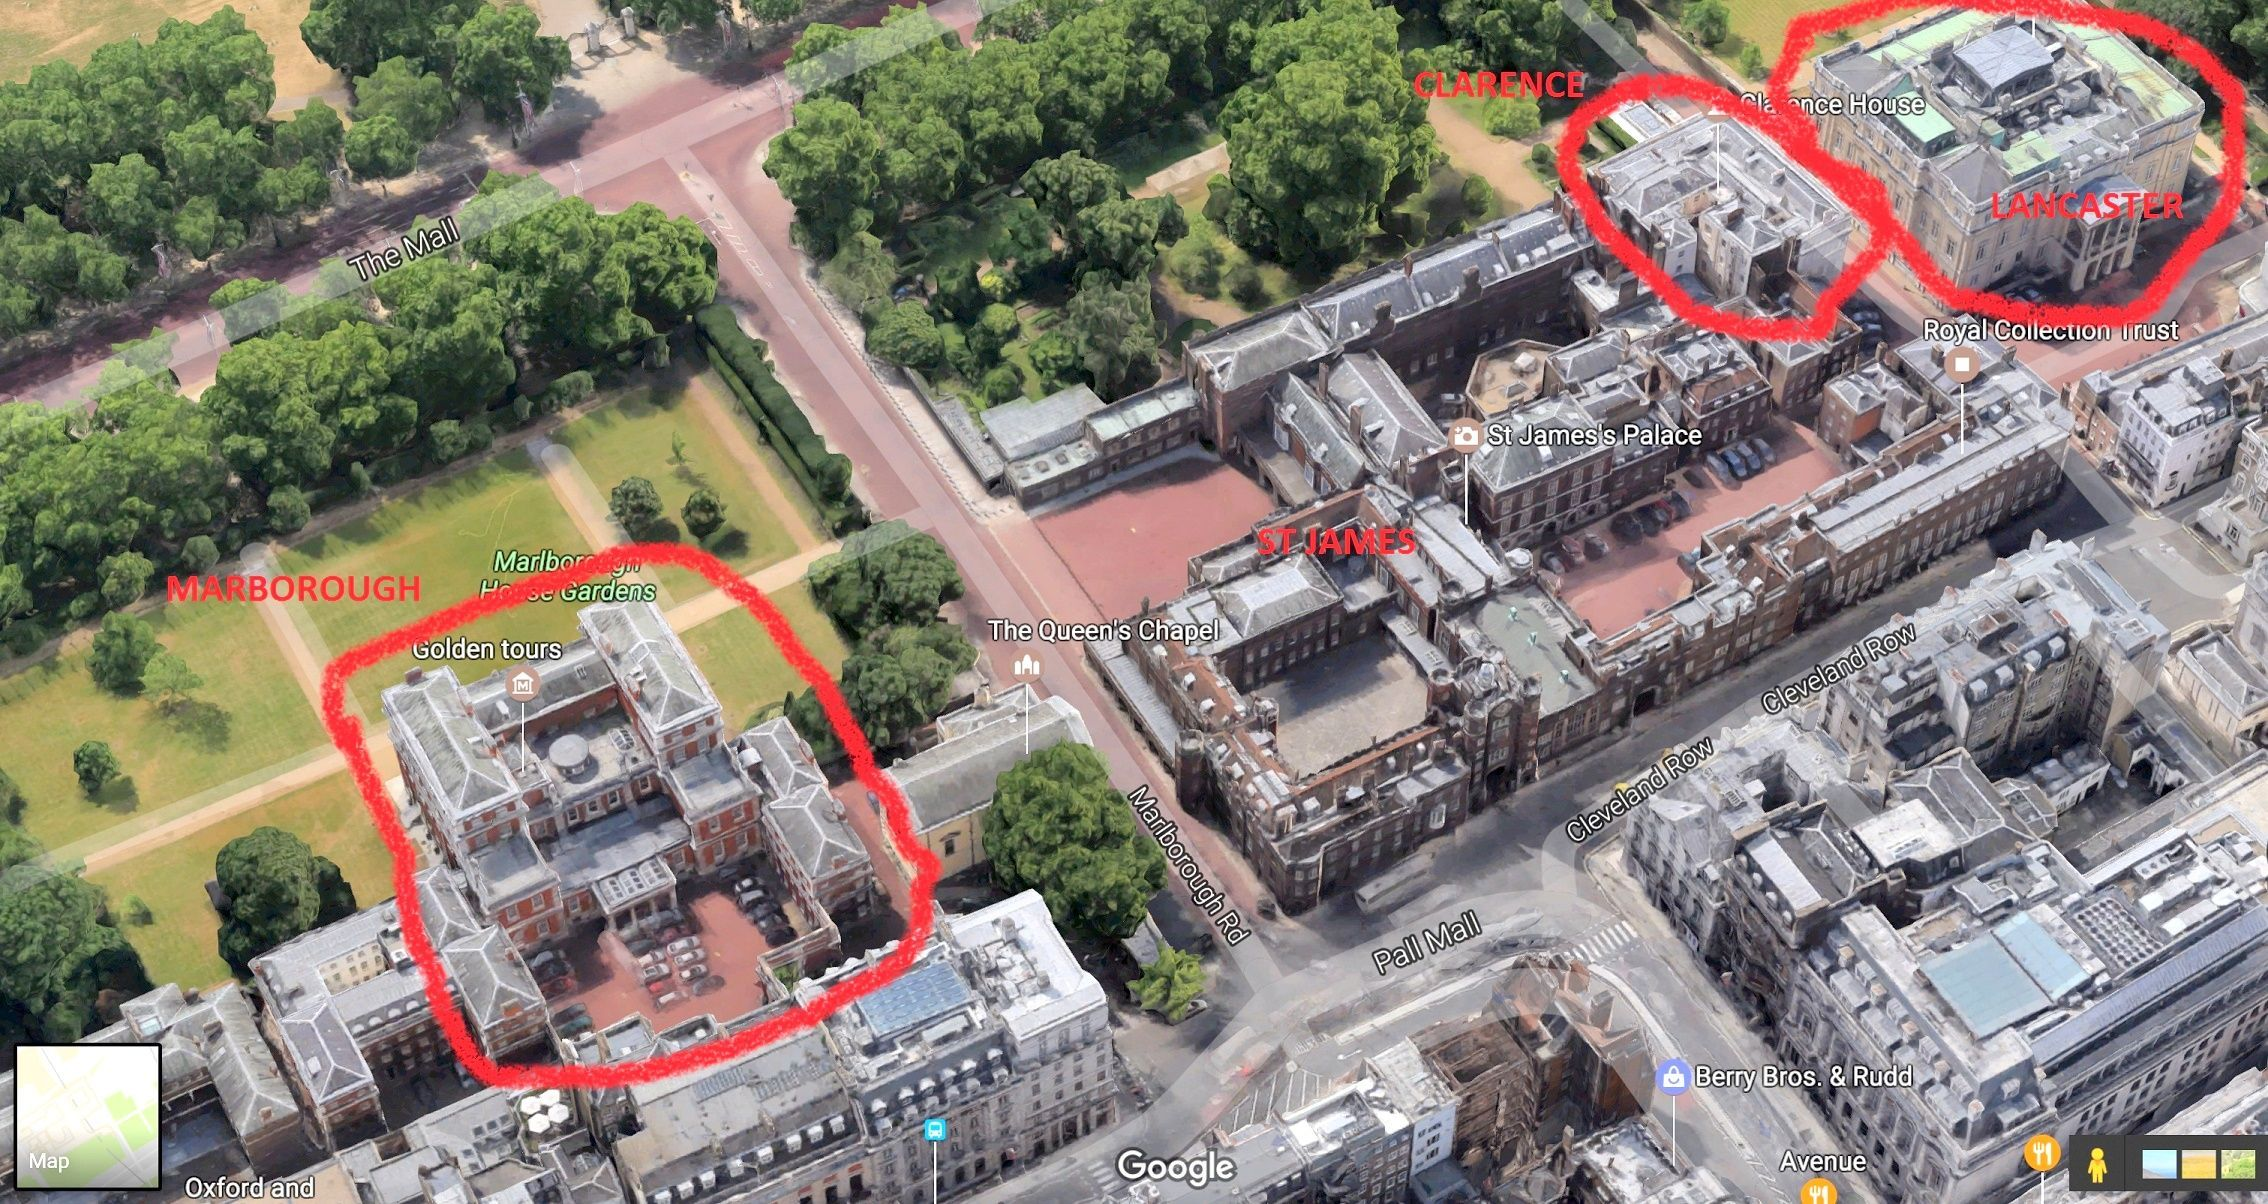 Showing how close palaces are top each other | British Royal